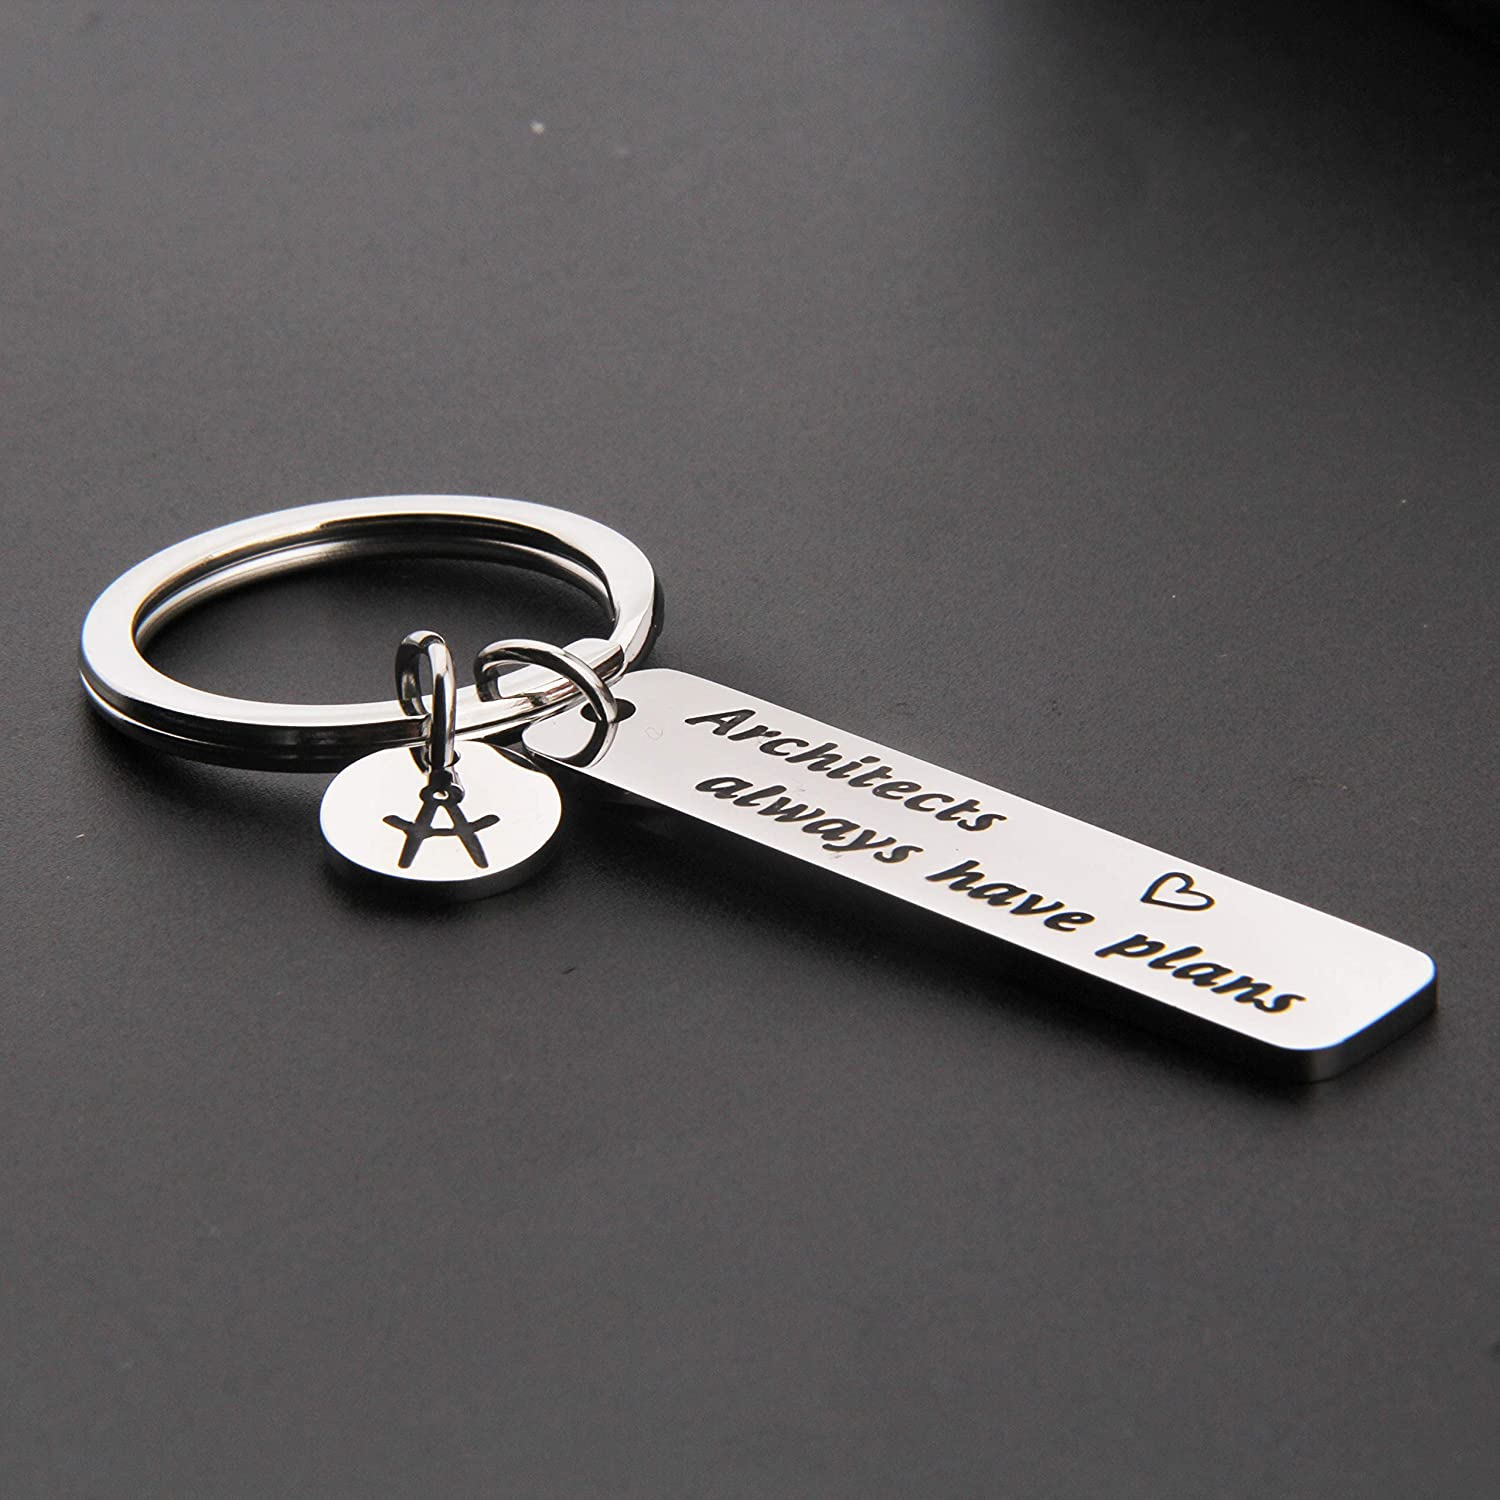 MAOFAED Architect Gifts Architecture Gifts Architecture Student Gift Architect Always Have Plans Archi Keychain